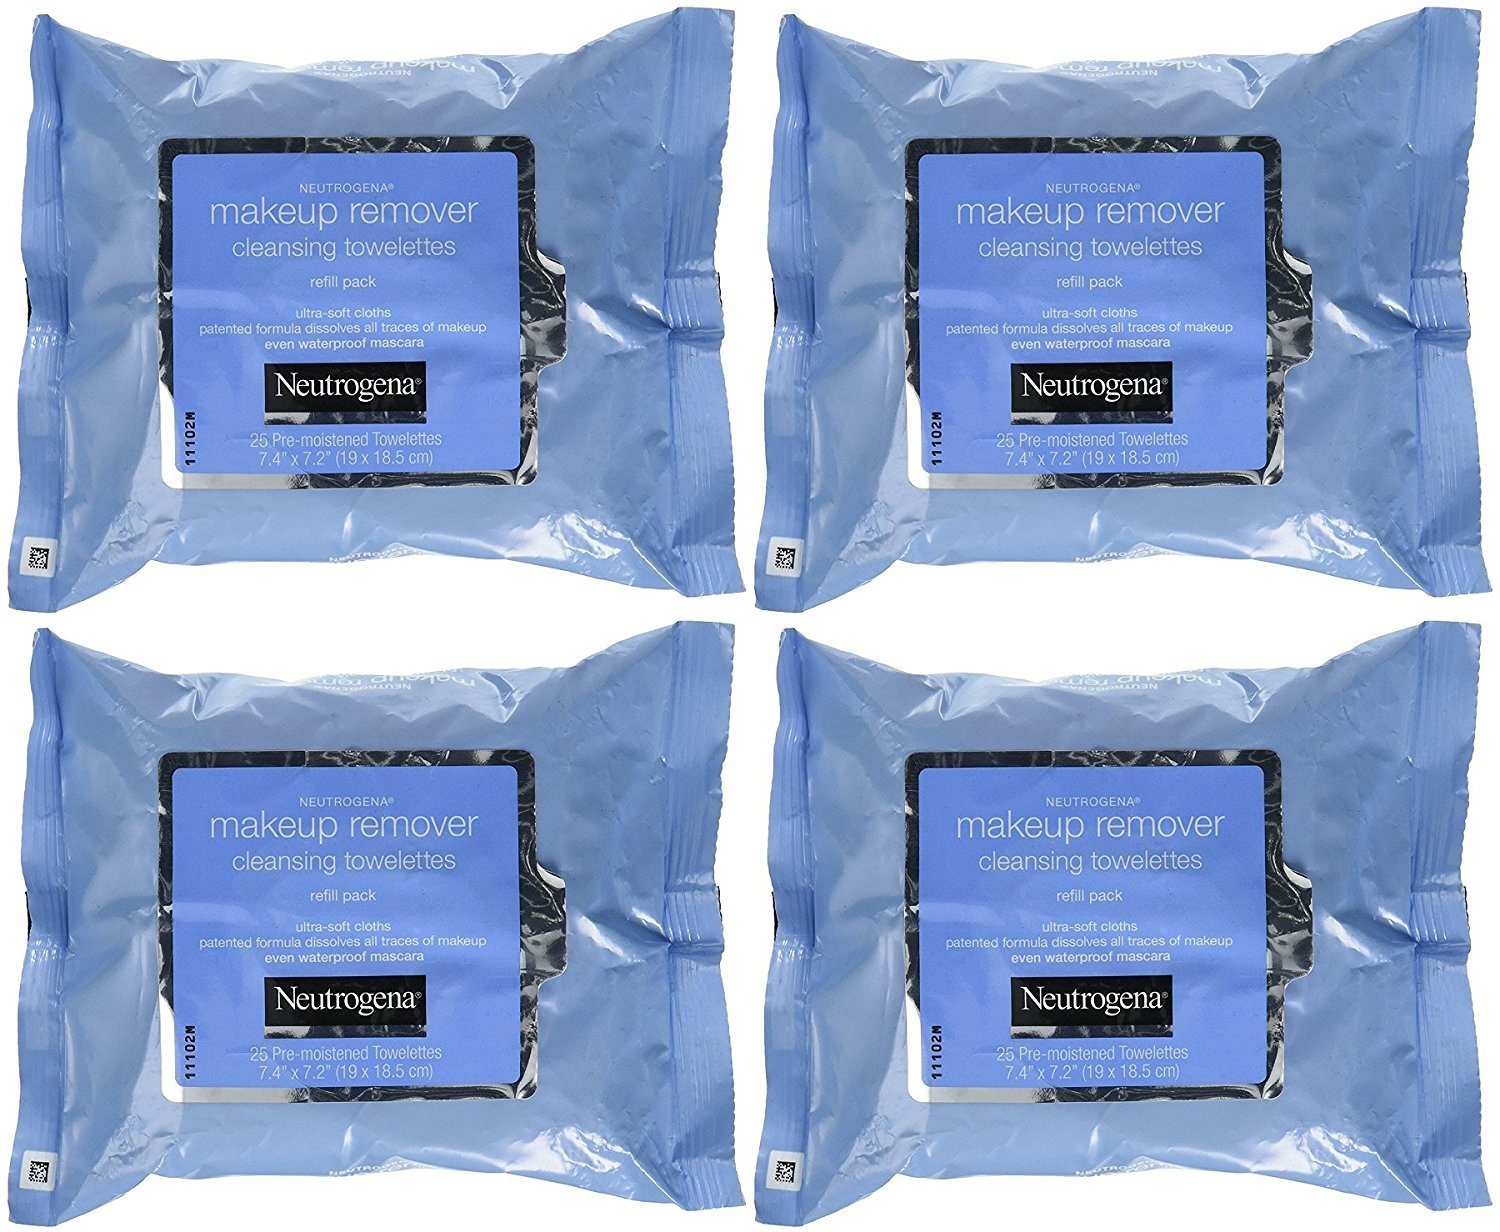 Neutrogena  | Makeup Remover Cleansing Towelettes 25 ct (Pack of 4) |  $21.82